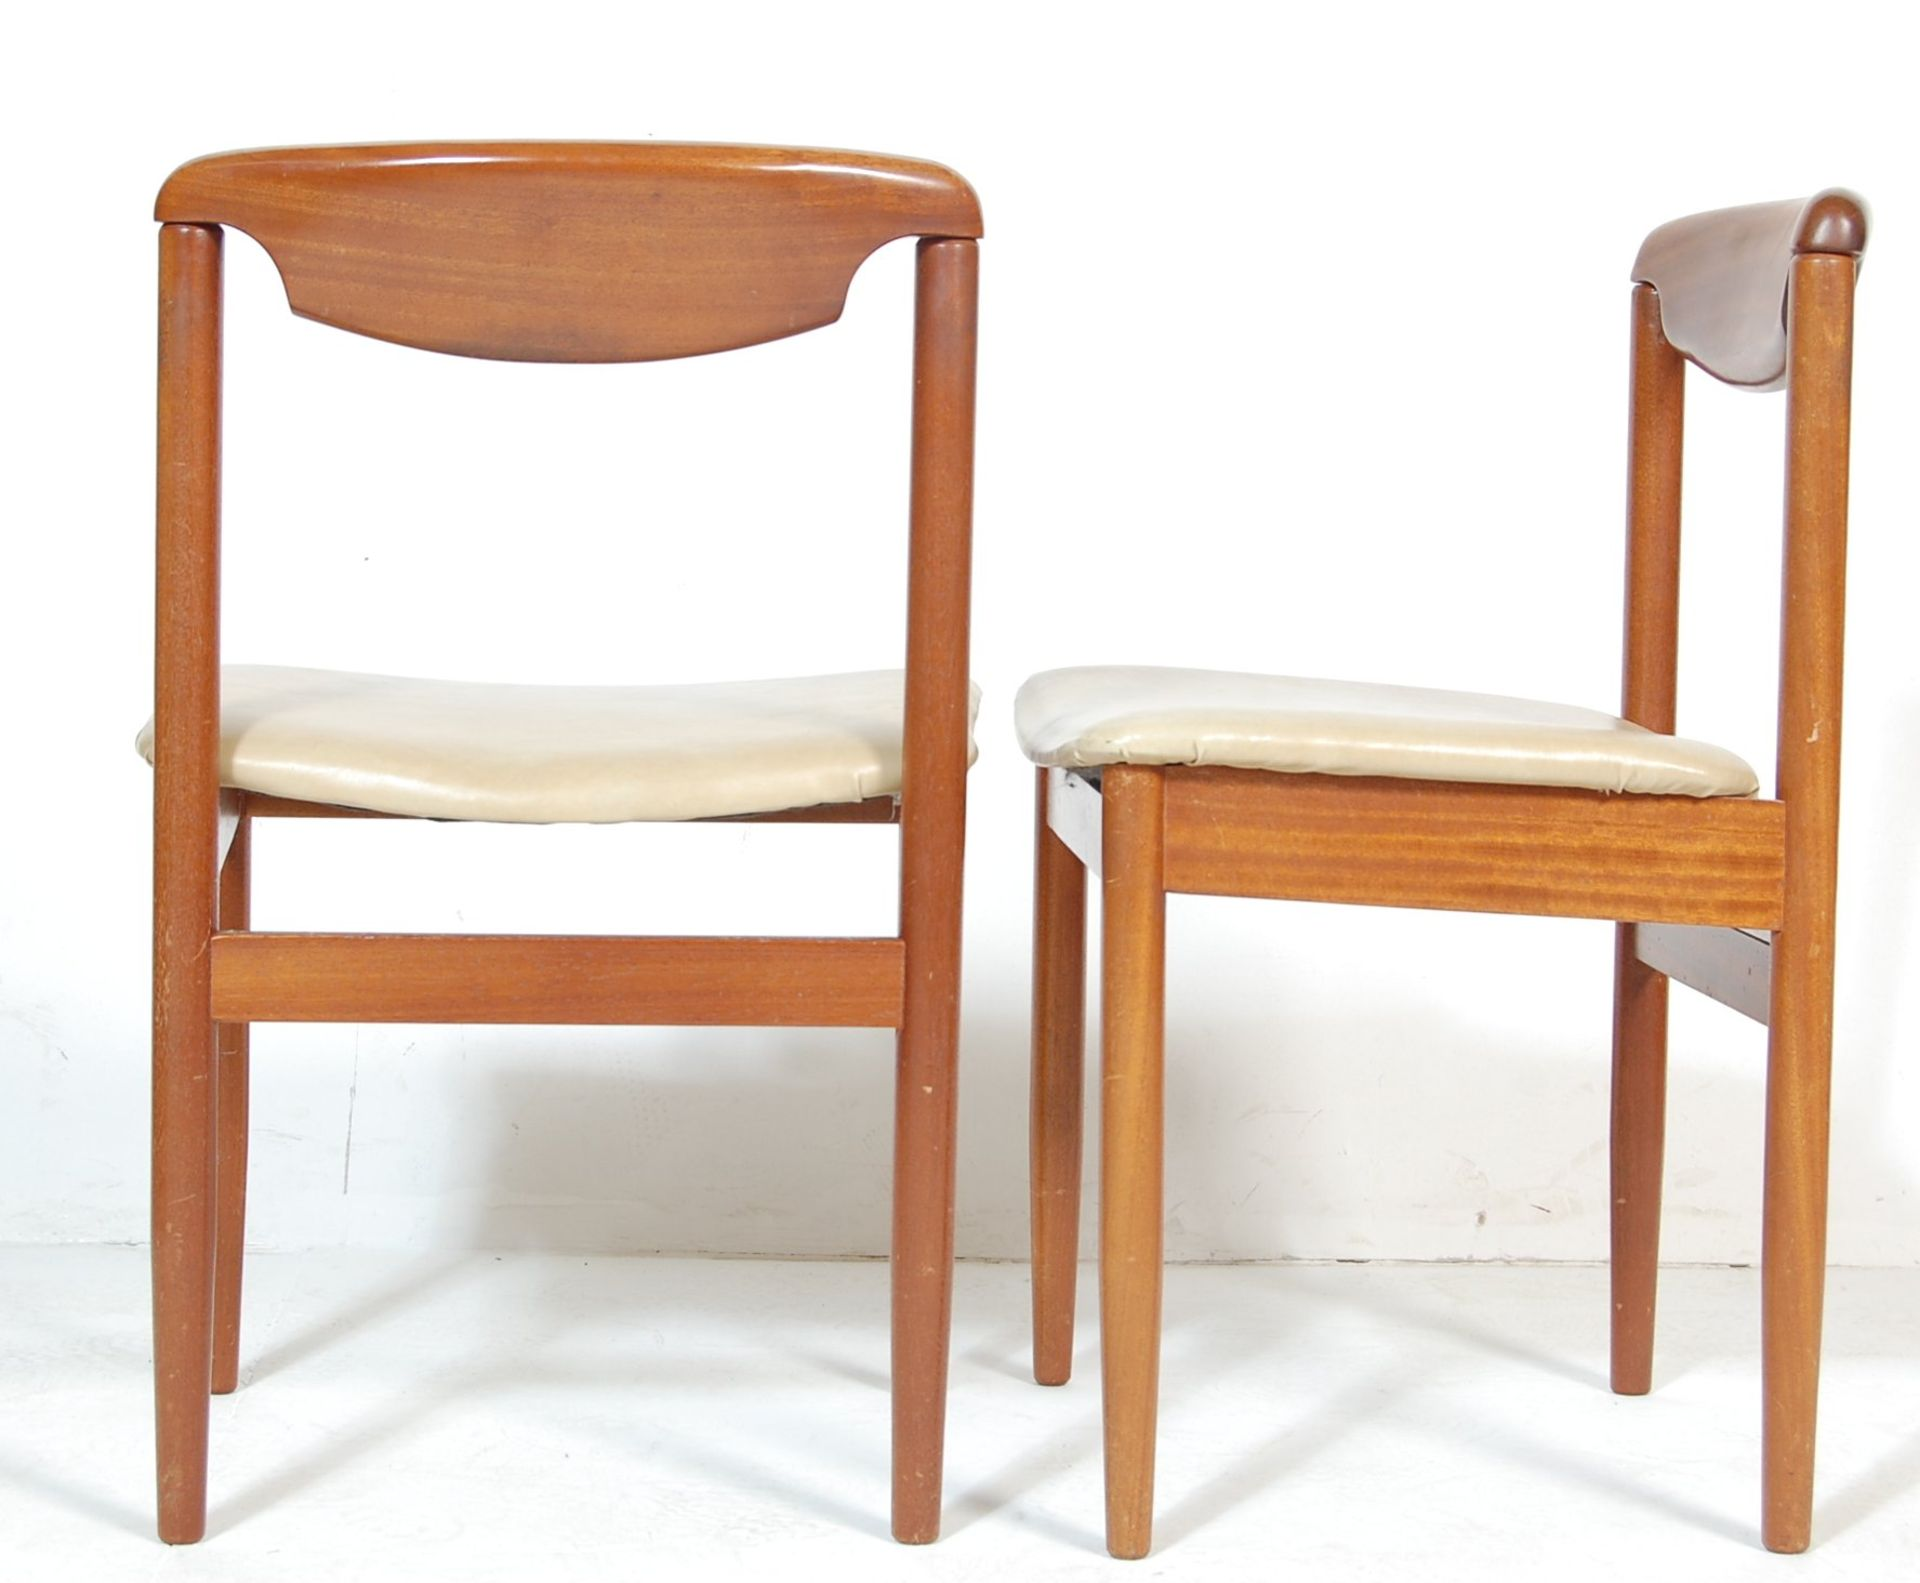 FOUR RETRO TEAK WOOD DINING CHAIRS WITH LEATHER SEATS - Image 5 of 5